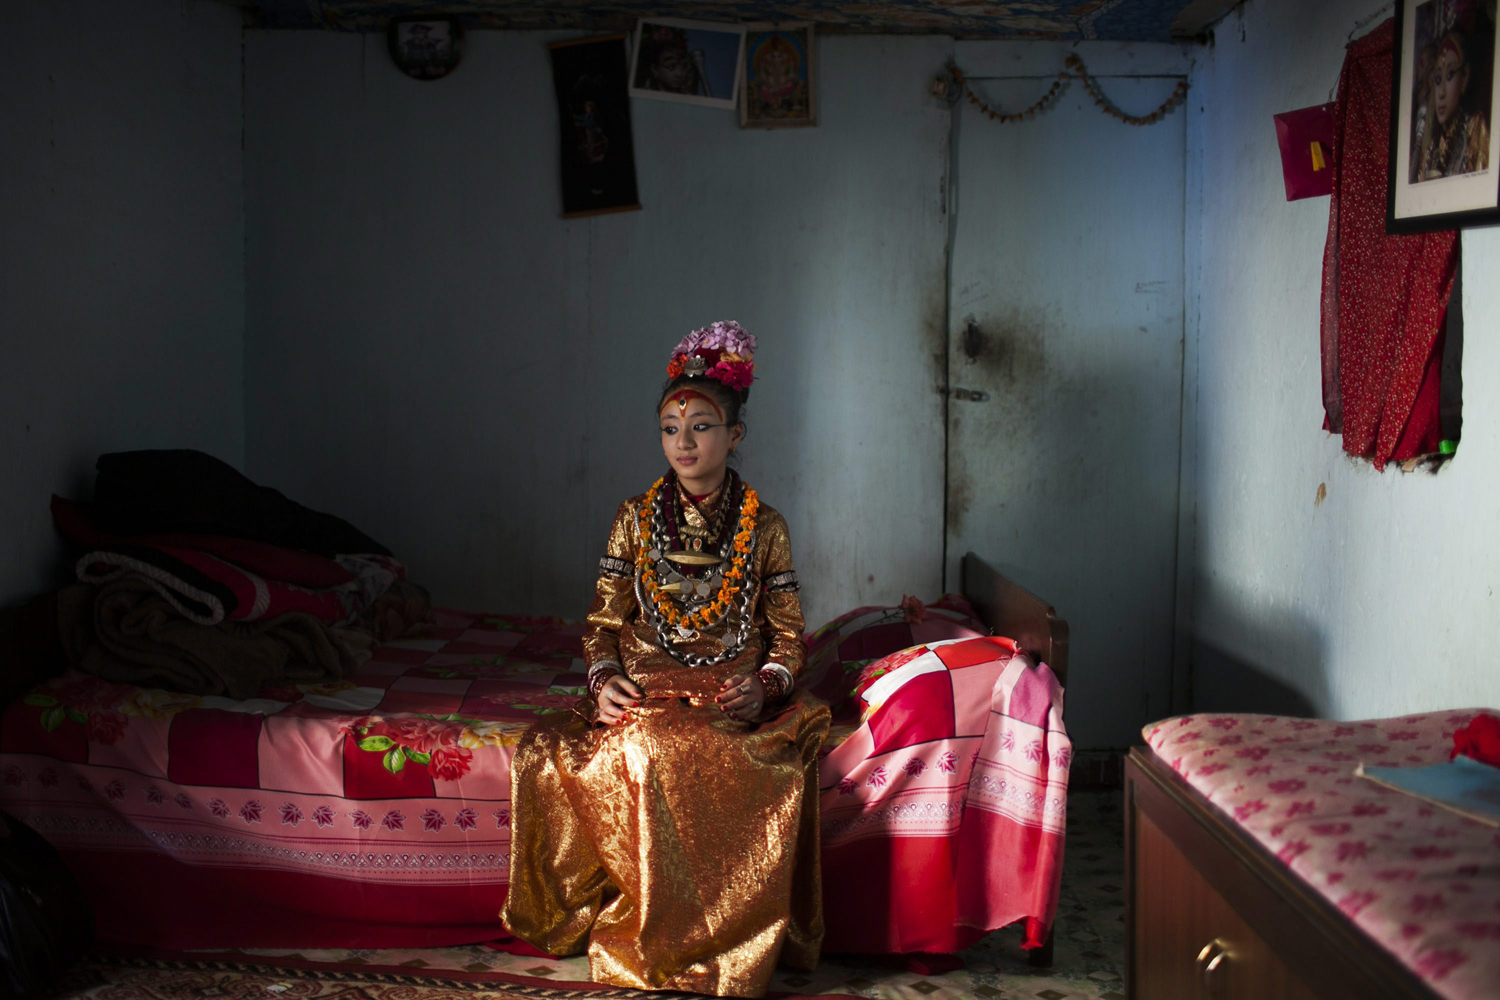 June 7, 2013. Kumari Samita Bajracharya, aged 10, waits for the procession to attend the Rato Machindranath chariot festival, also known as Bhoto Jatra, in Jwalakhel, on the outskirts of Kathmandu.